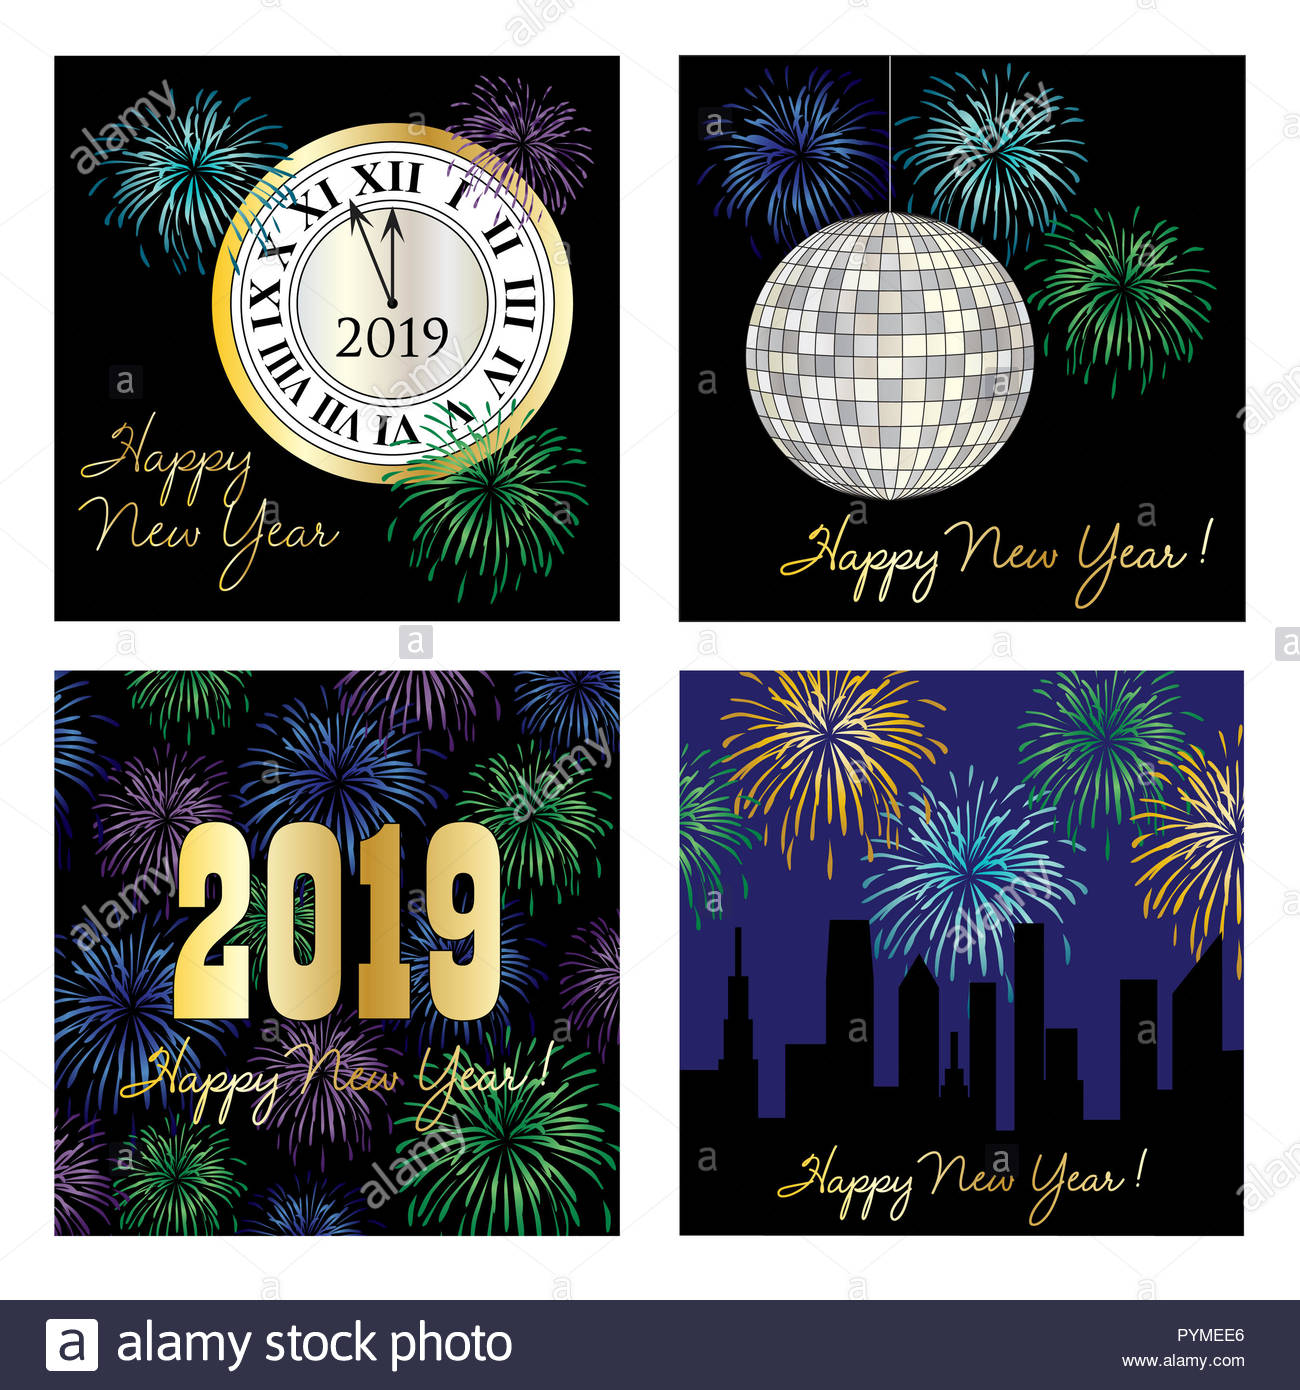 new years eve 2019 square vector graphics Stock Photo